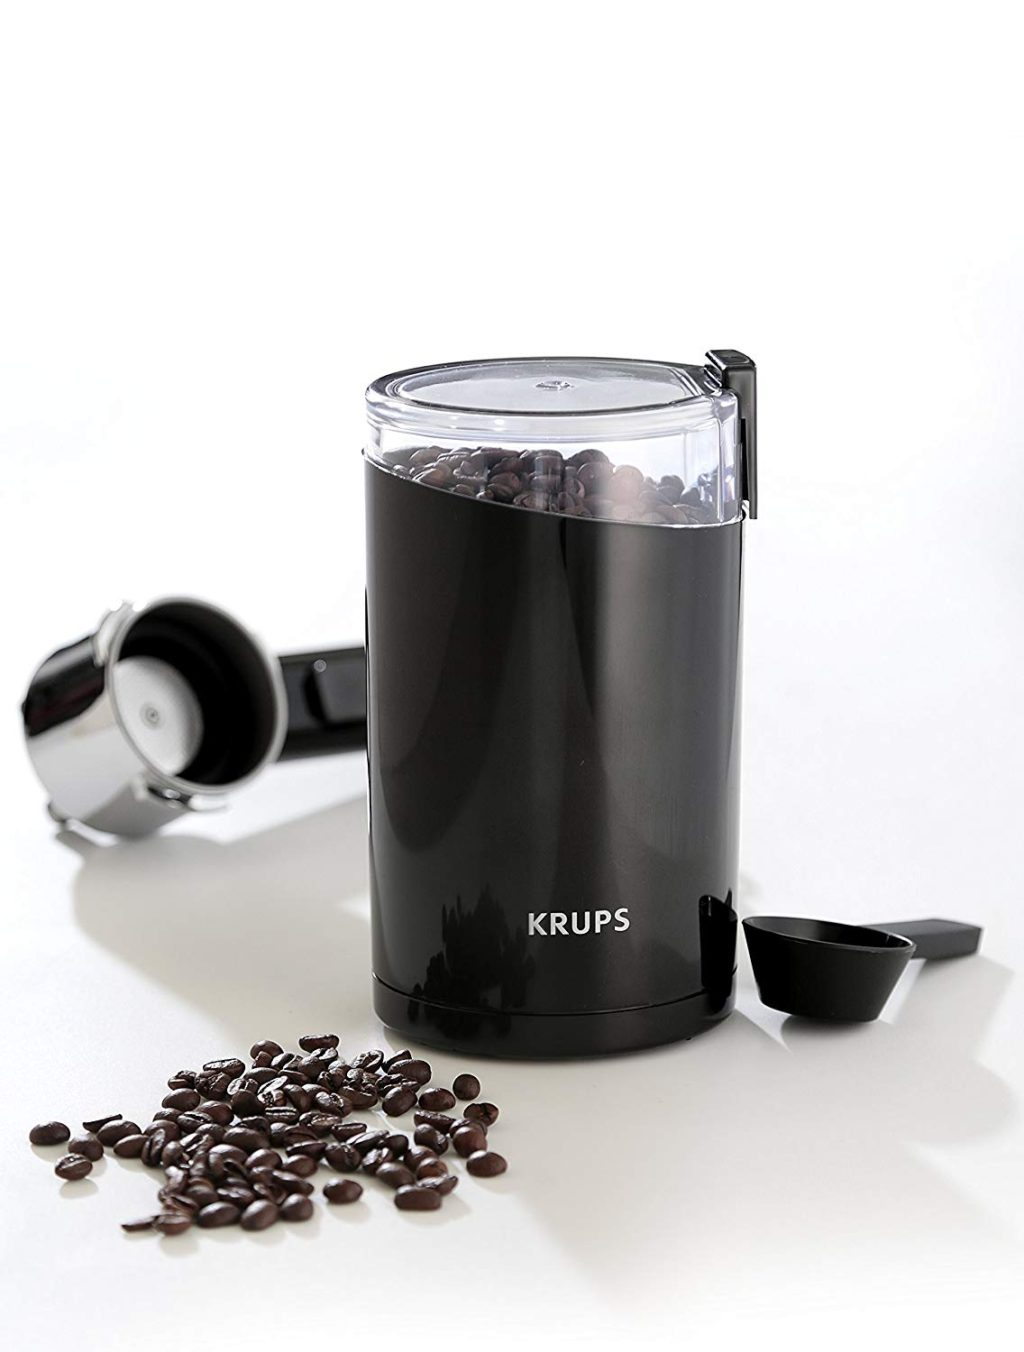 KRUPS F203 Electric Spice + Coffee Grinder